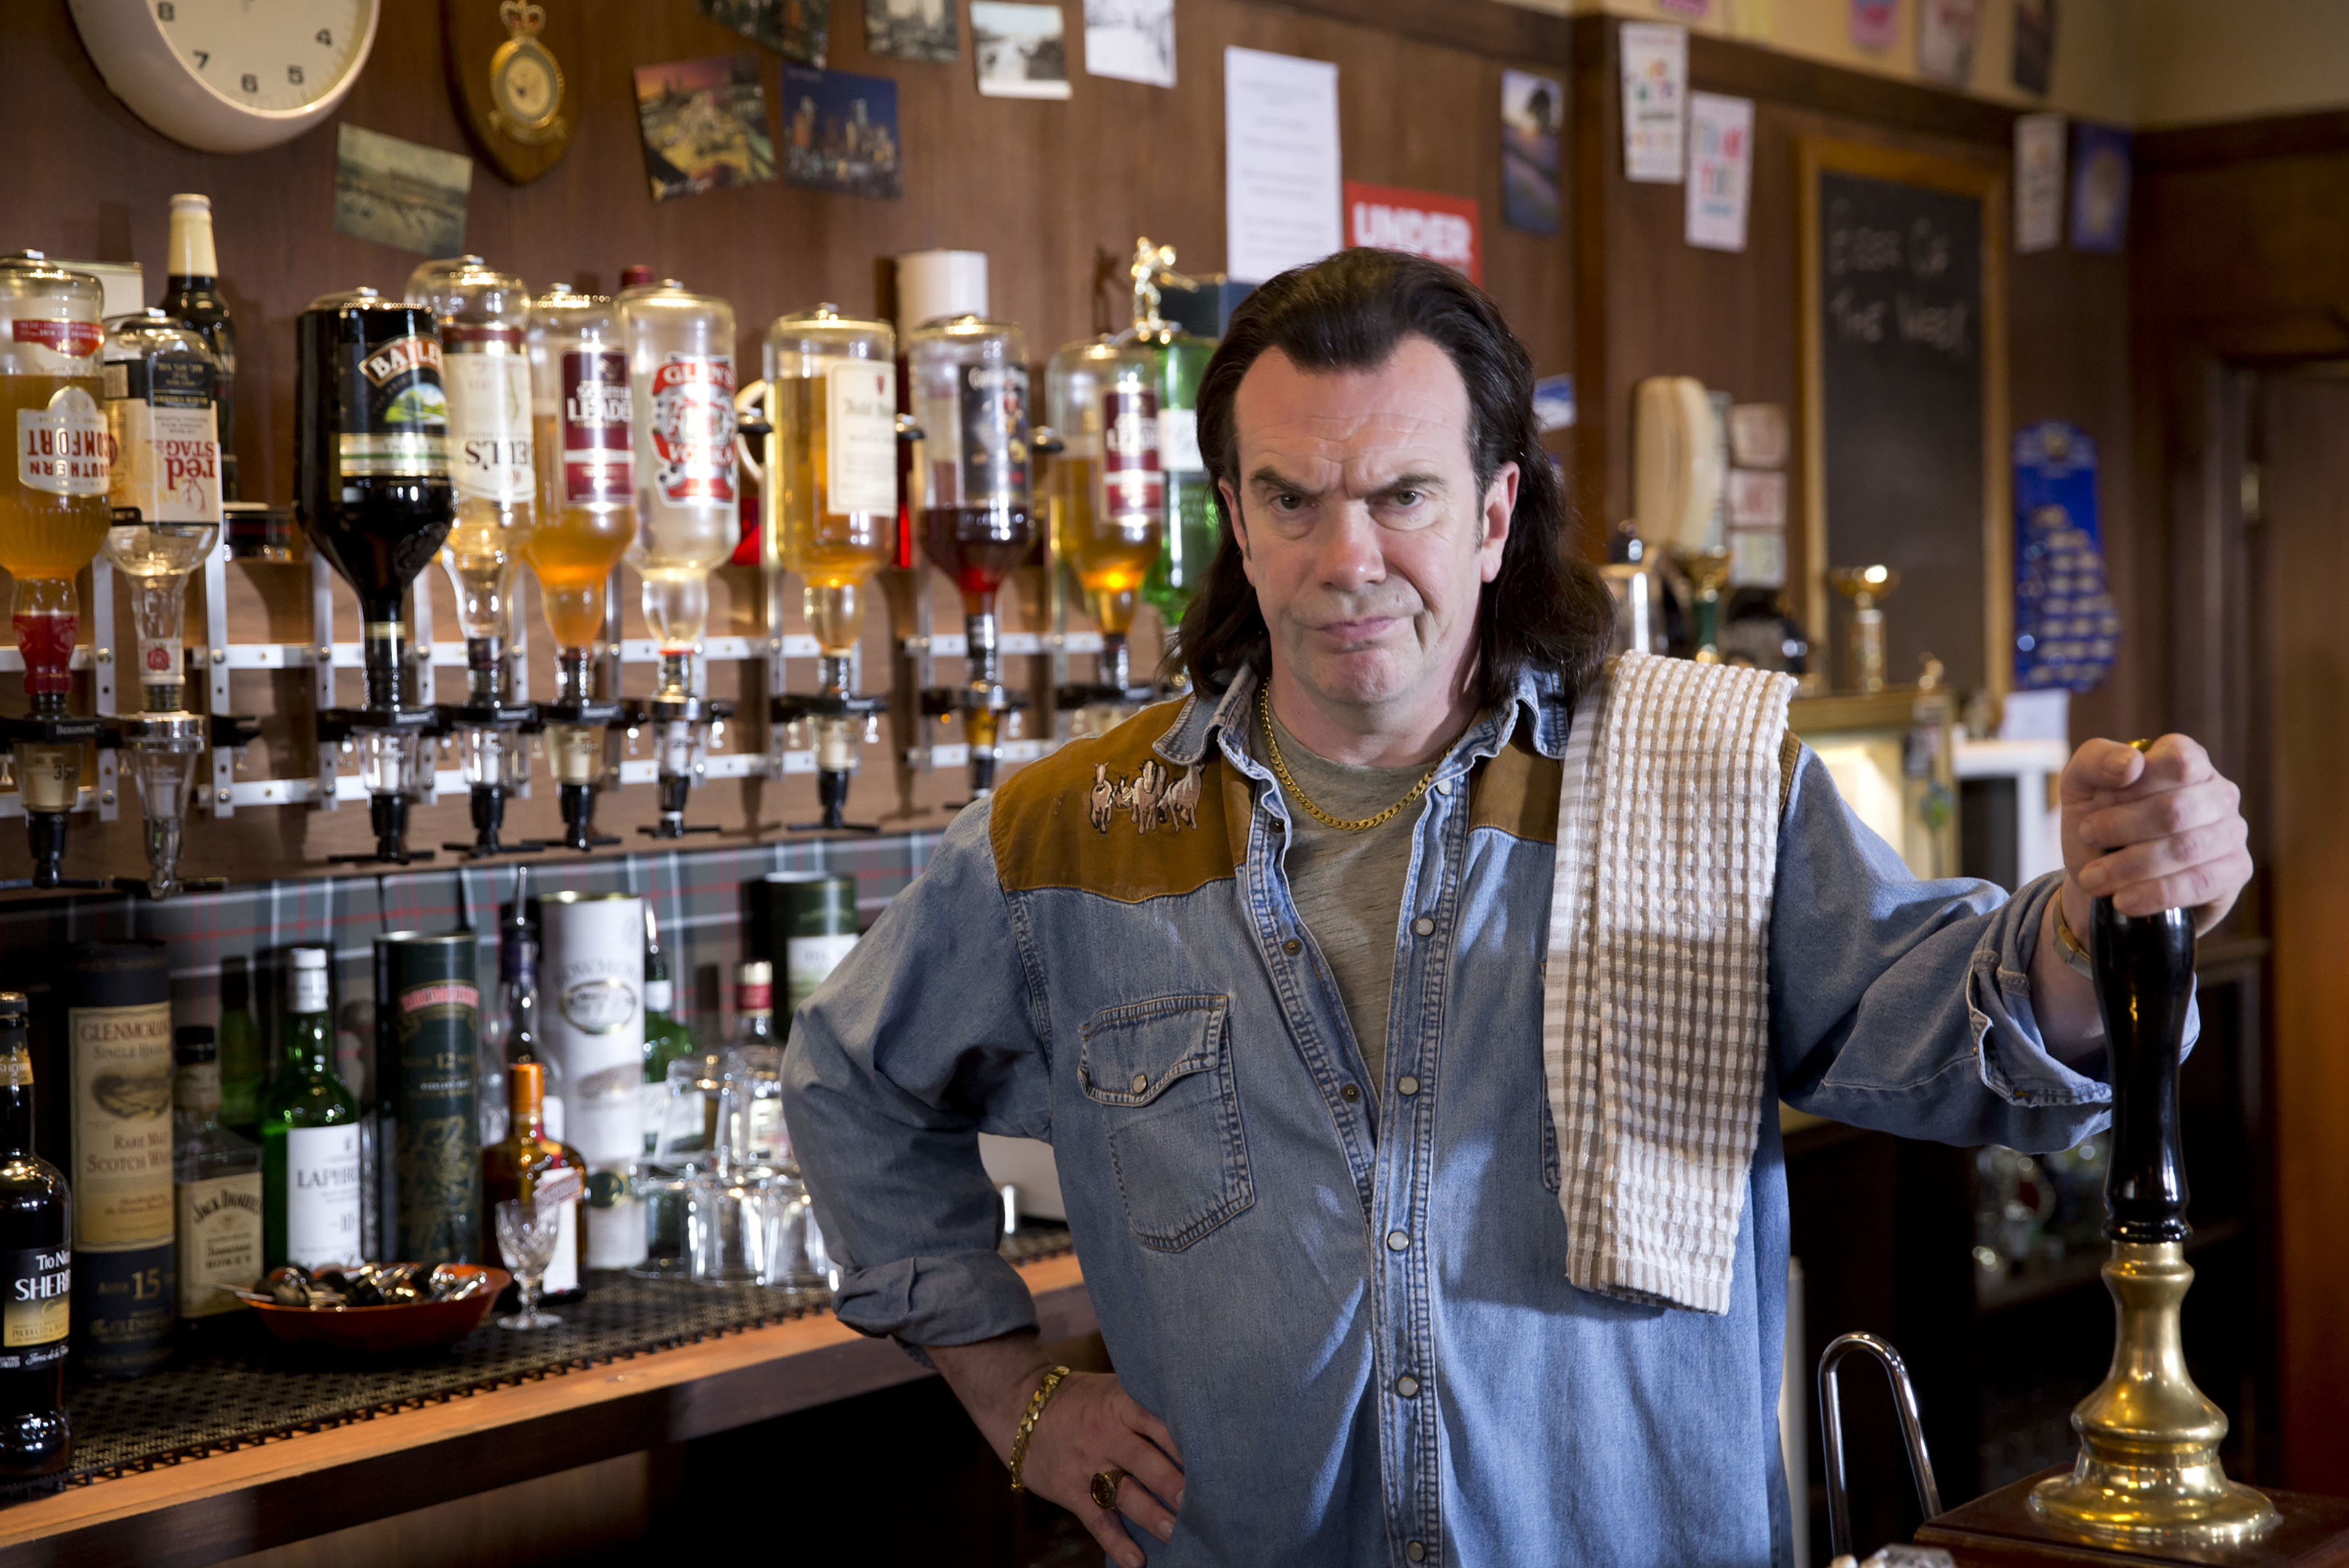 Gavin Mitchell, aka Boaby the Barman in Still Game took part in the initiative.